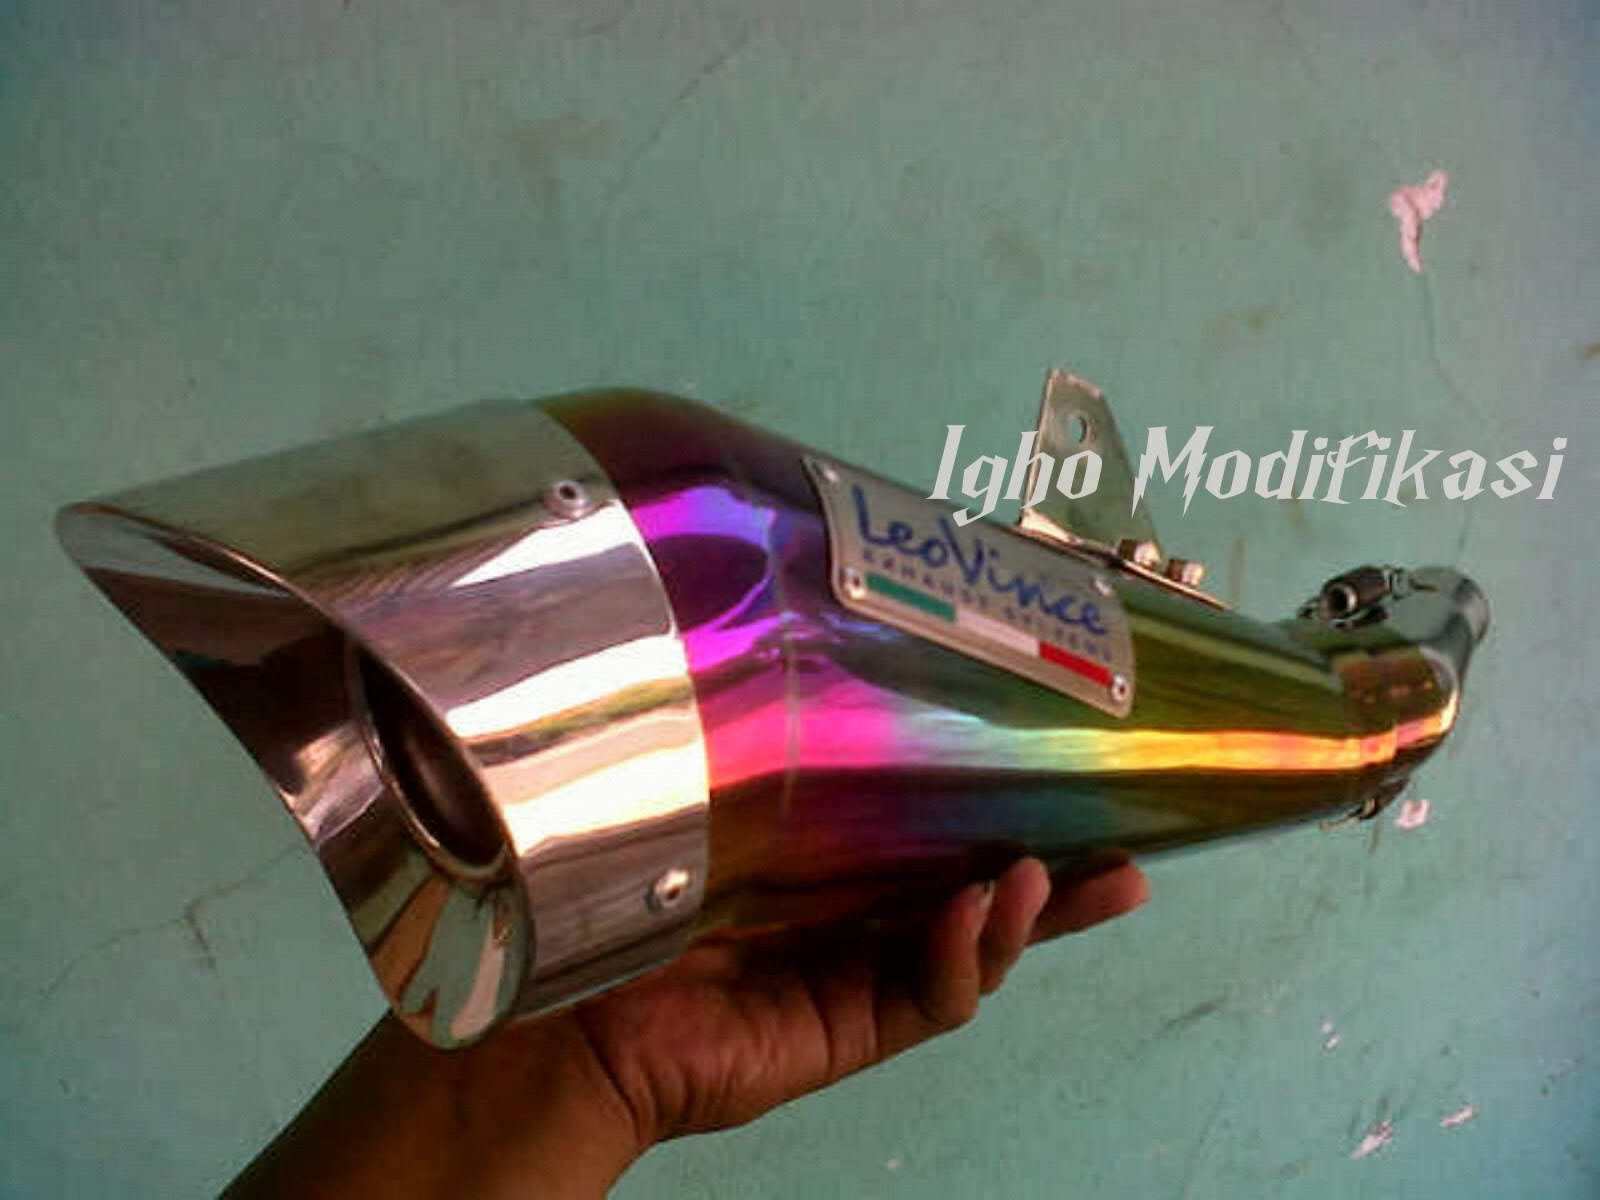 250, knalpot custon leo vince cb150r, knalpot custom igho modifikasi title=